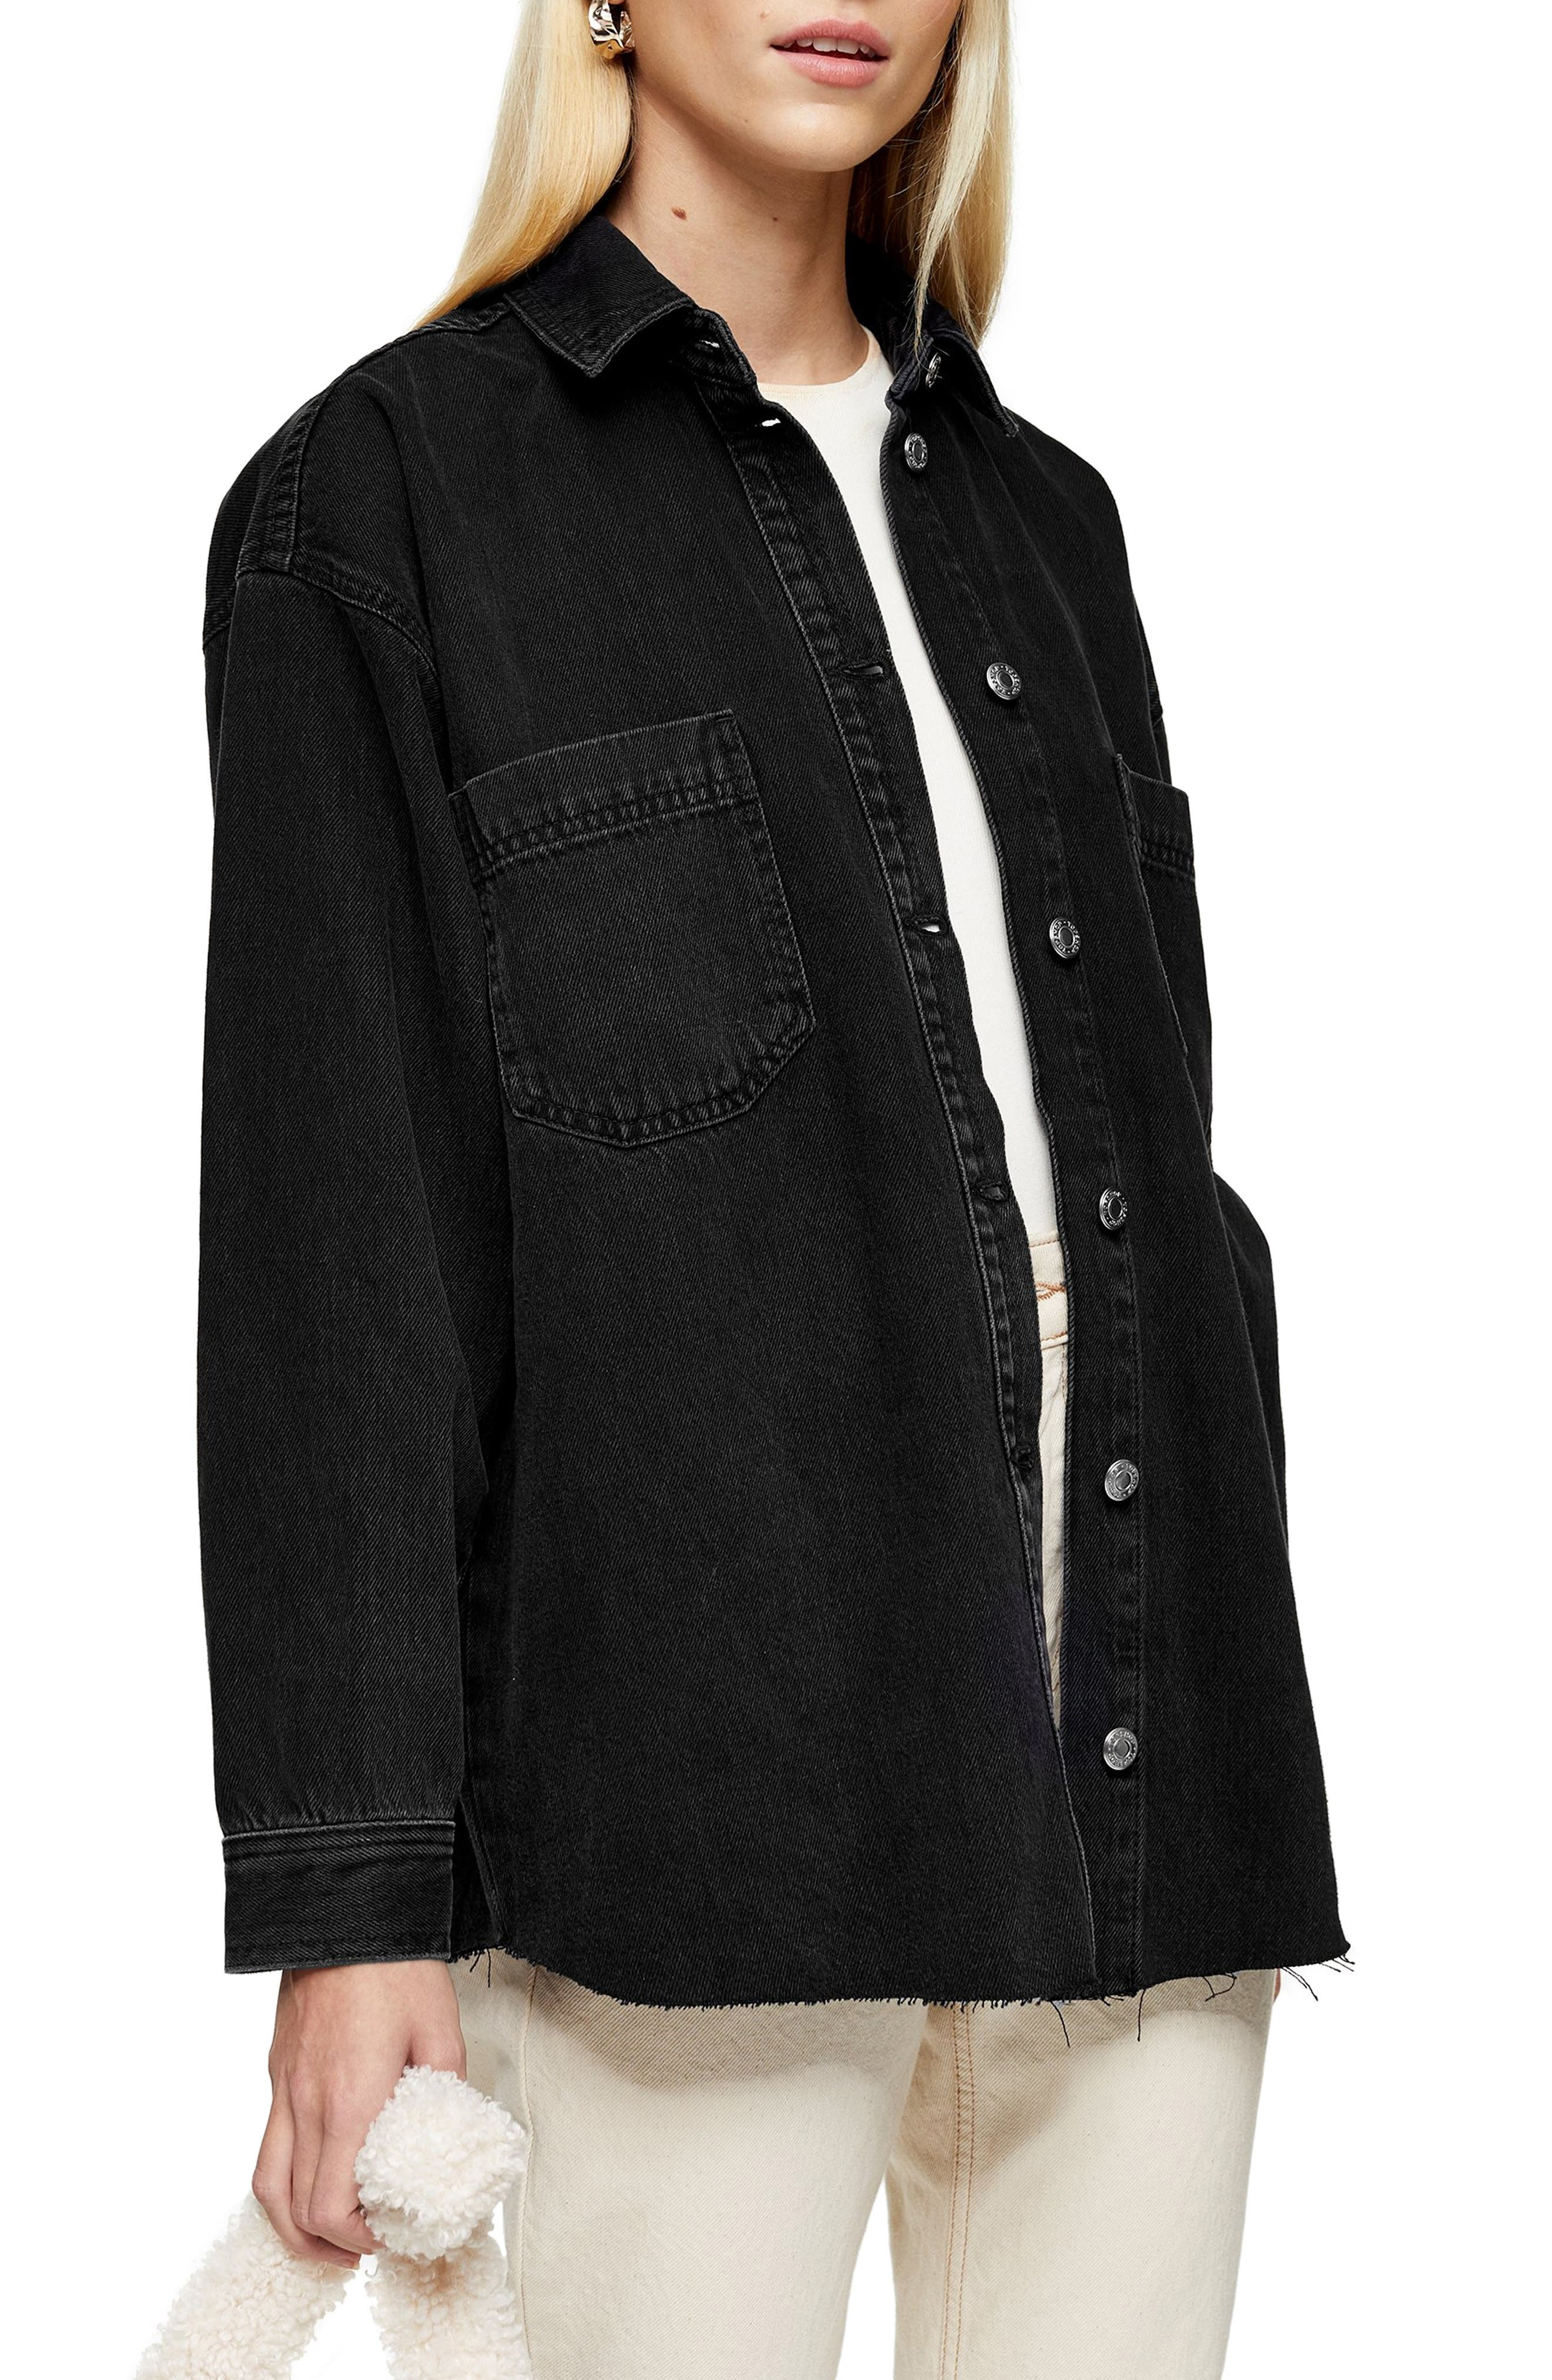 Topshop Denim Shirt Jacket